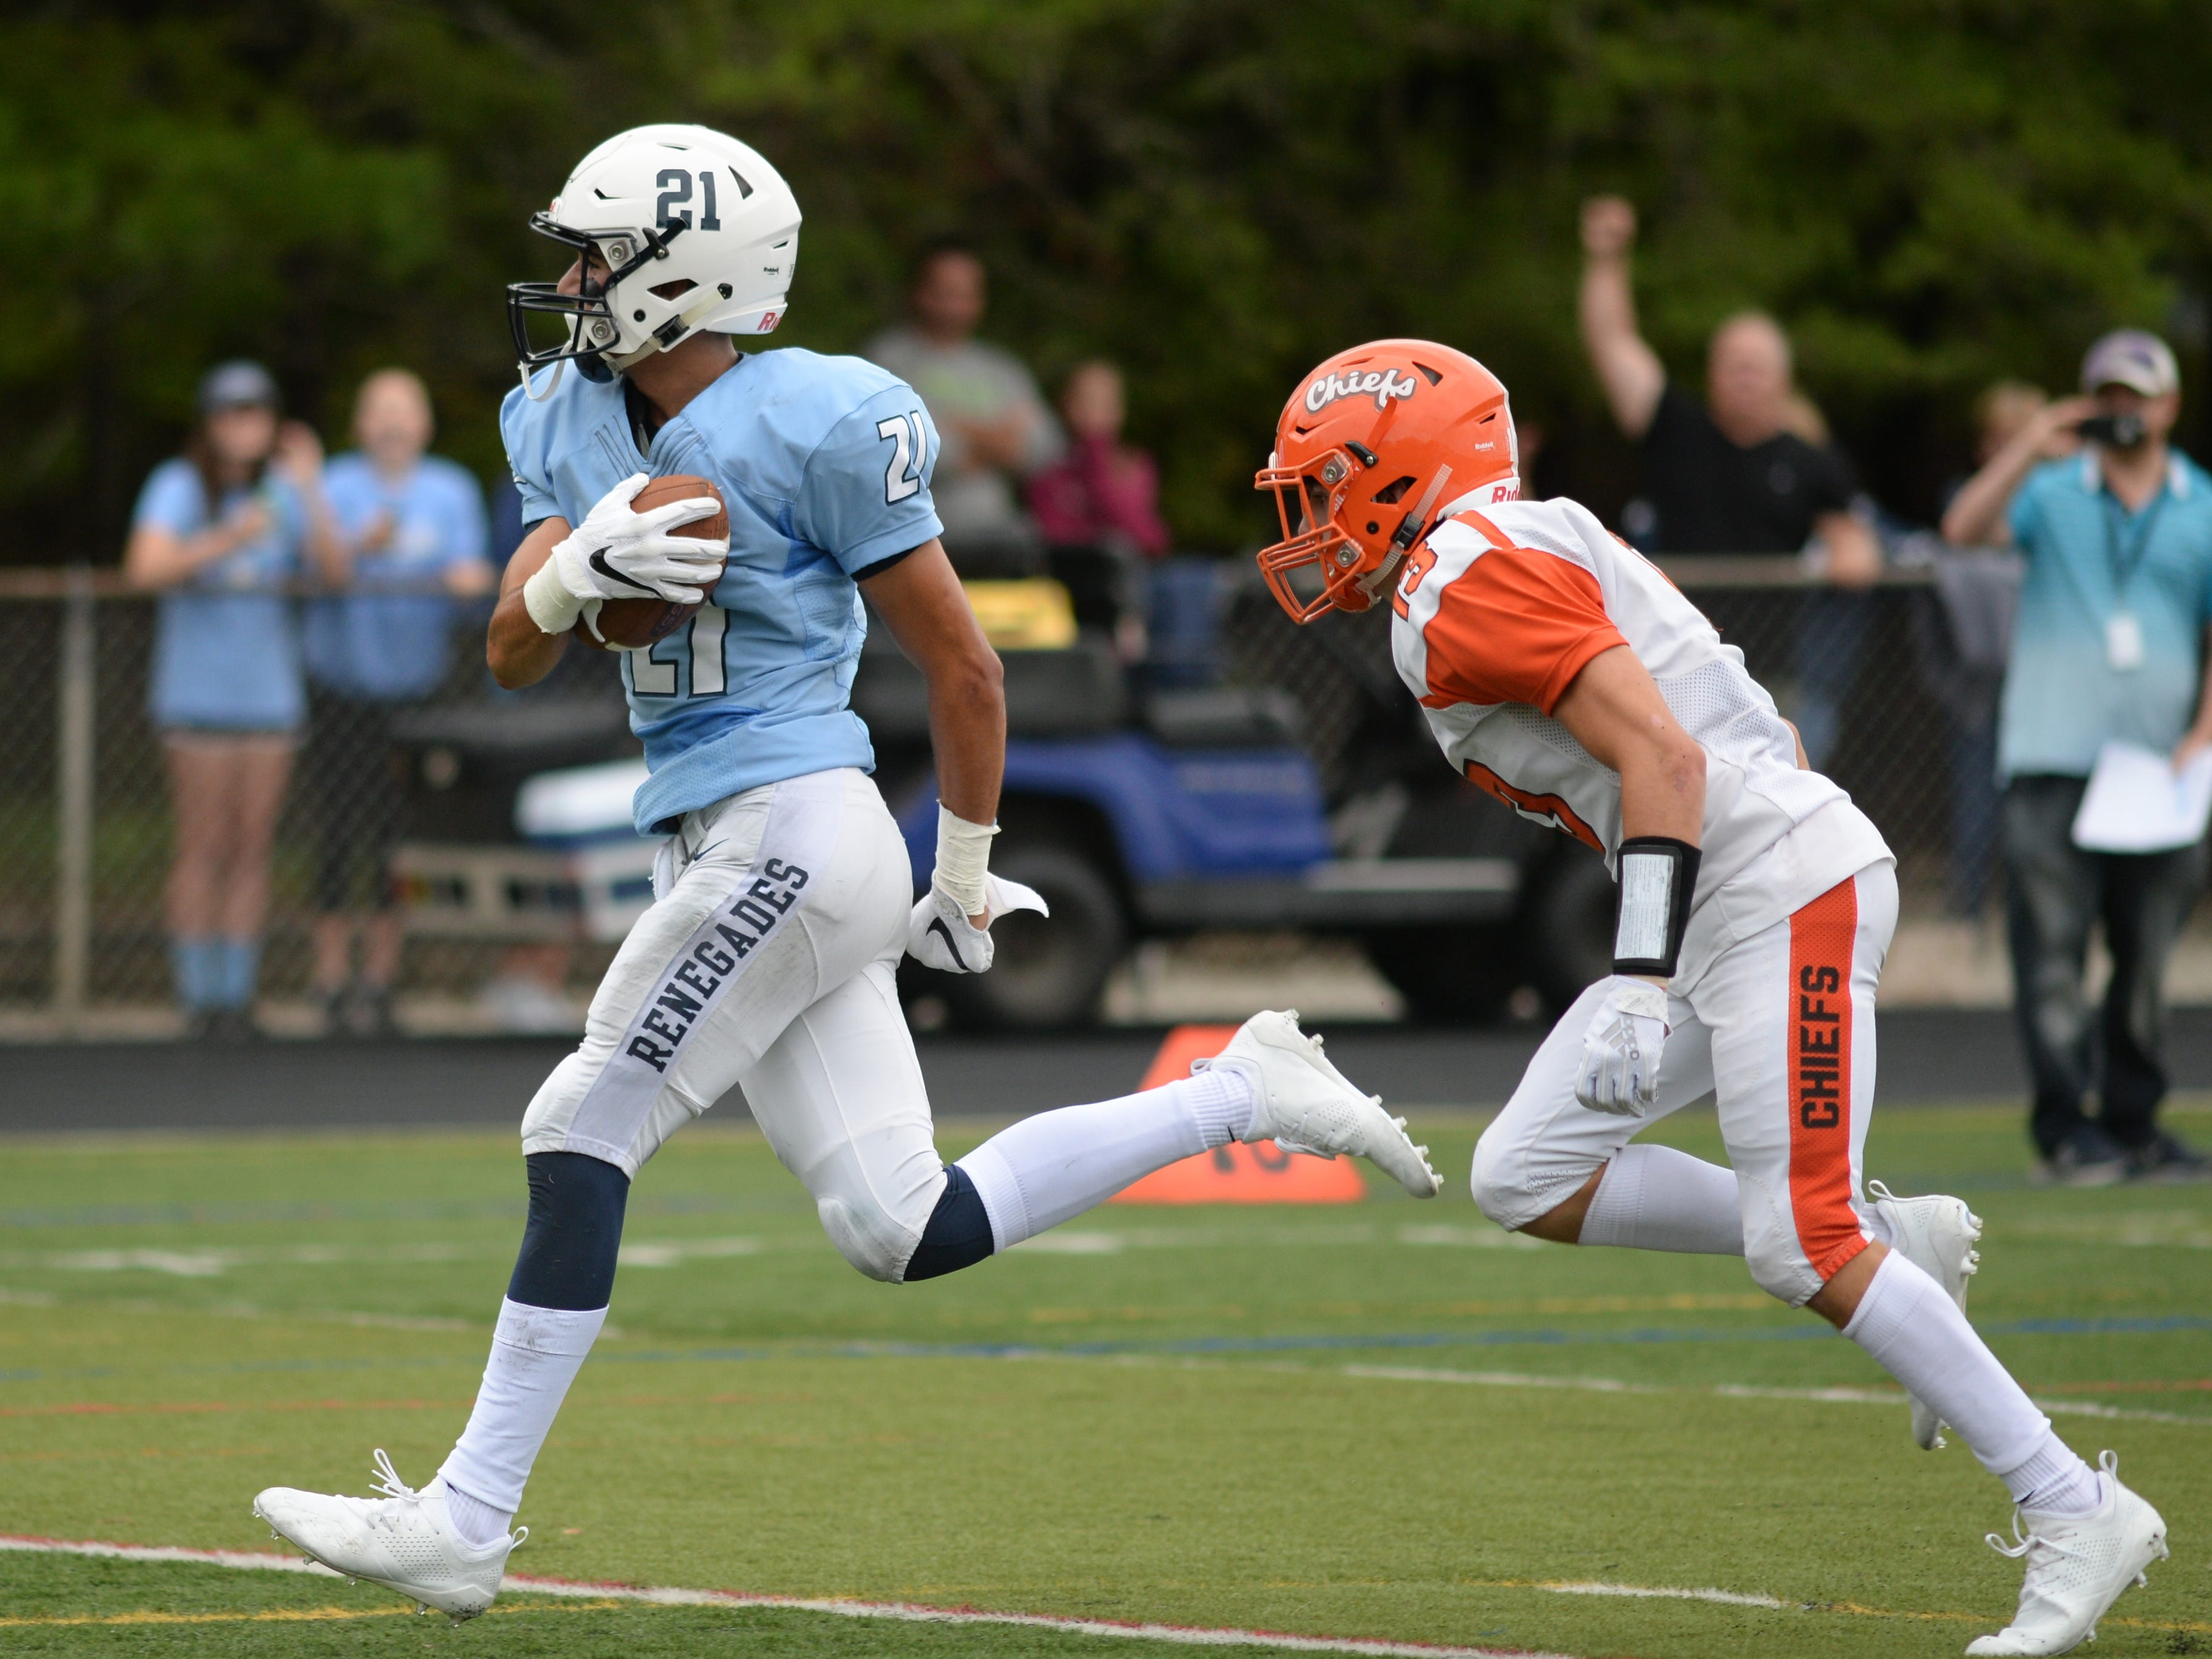 Shawnee's Jon Searcy runs for a touchdown during Saturday's football game against Cherokee at Shawnee High School,  Sept. 8, 2018.